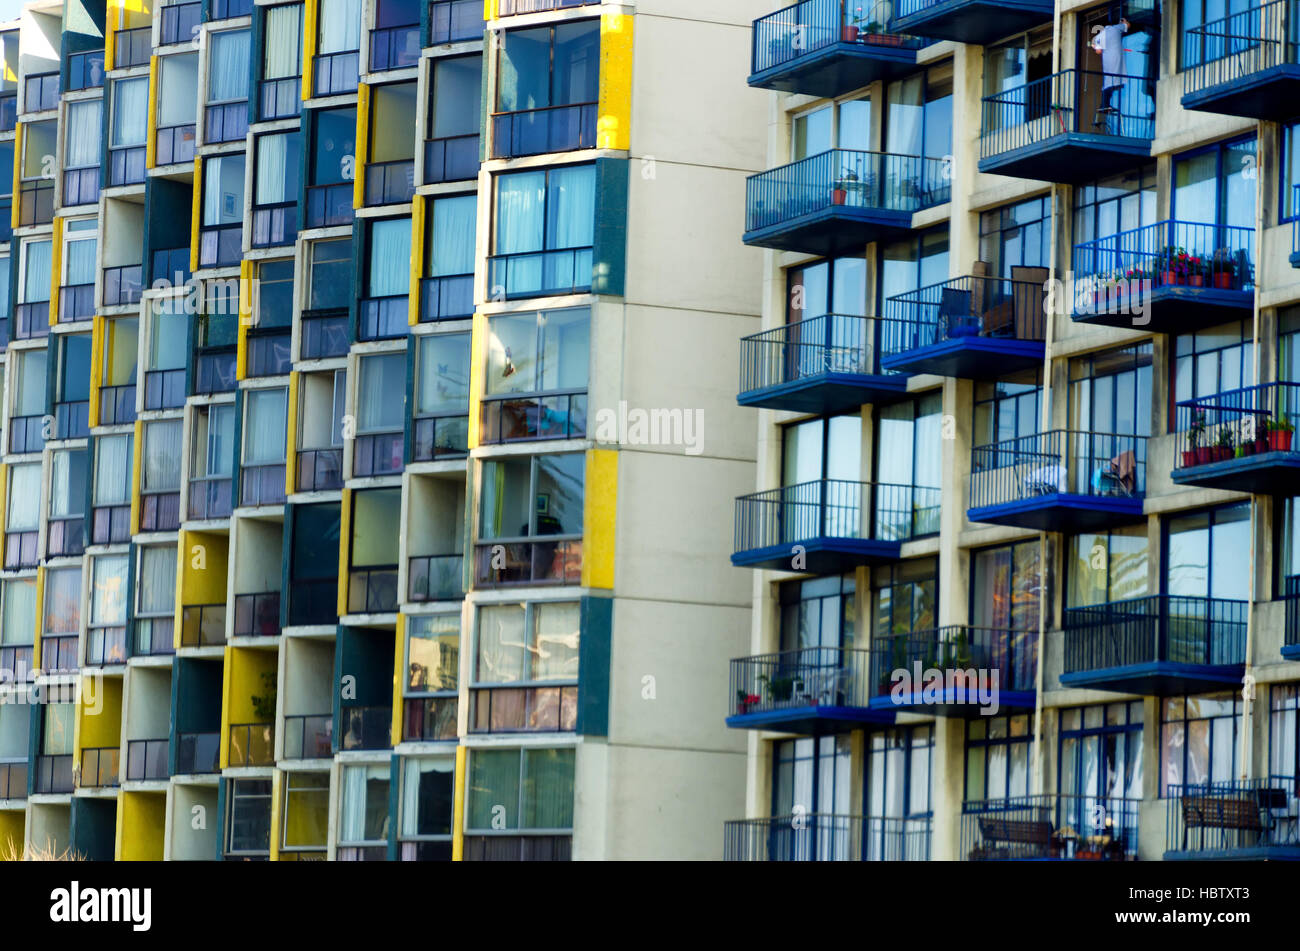 Balconies on apartment buildings in Vina del Mar, Chile - Stock Image